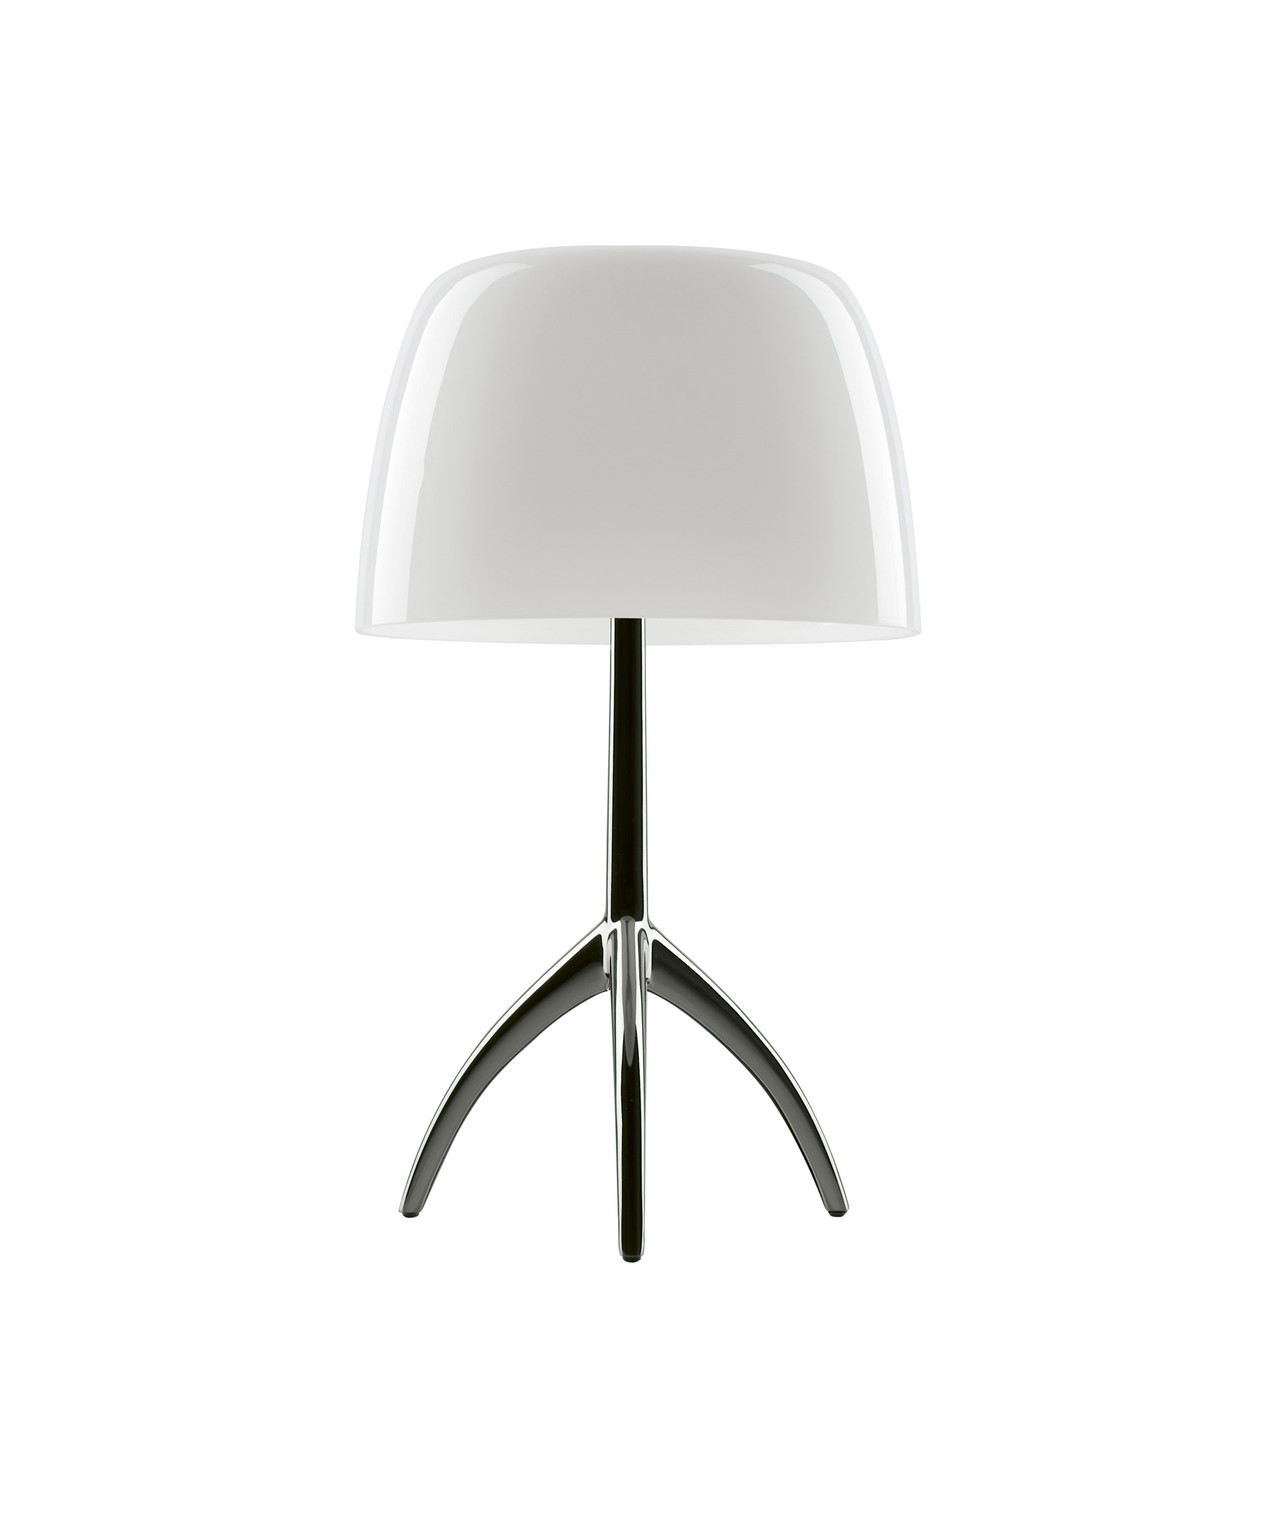 Image of   Lumiere Grande Bordlampe Hvid - Foscarini